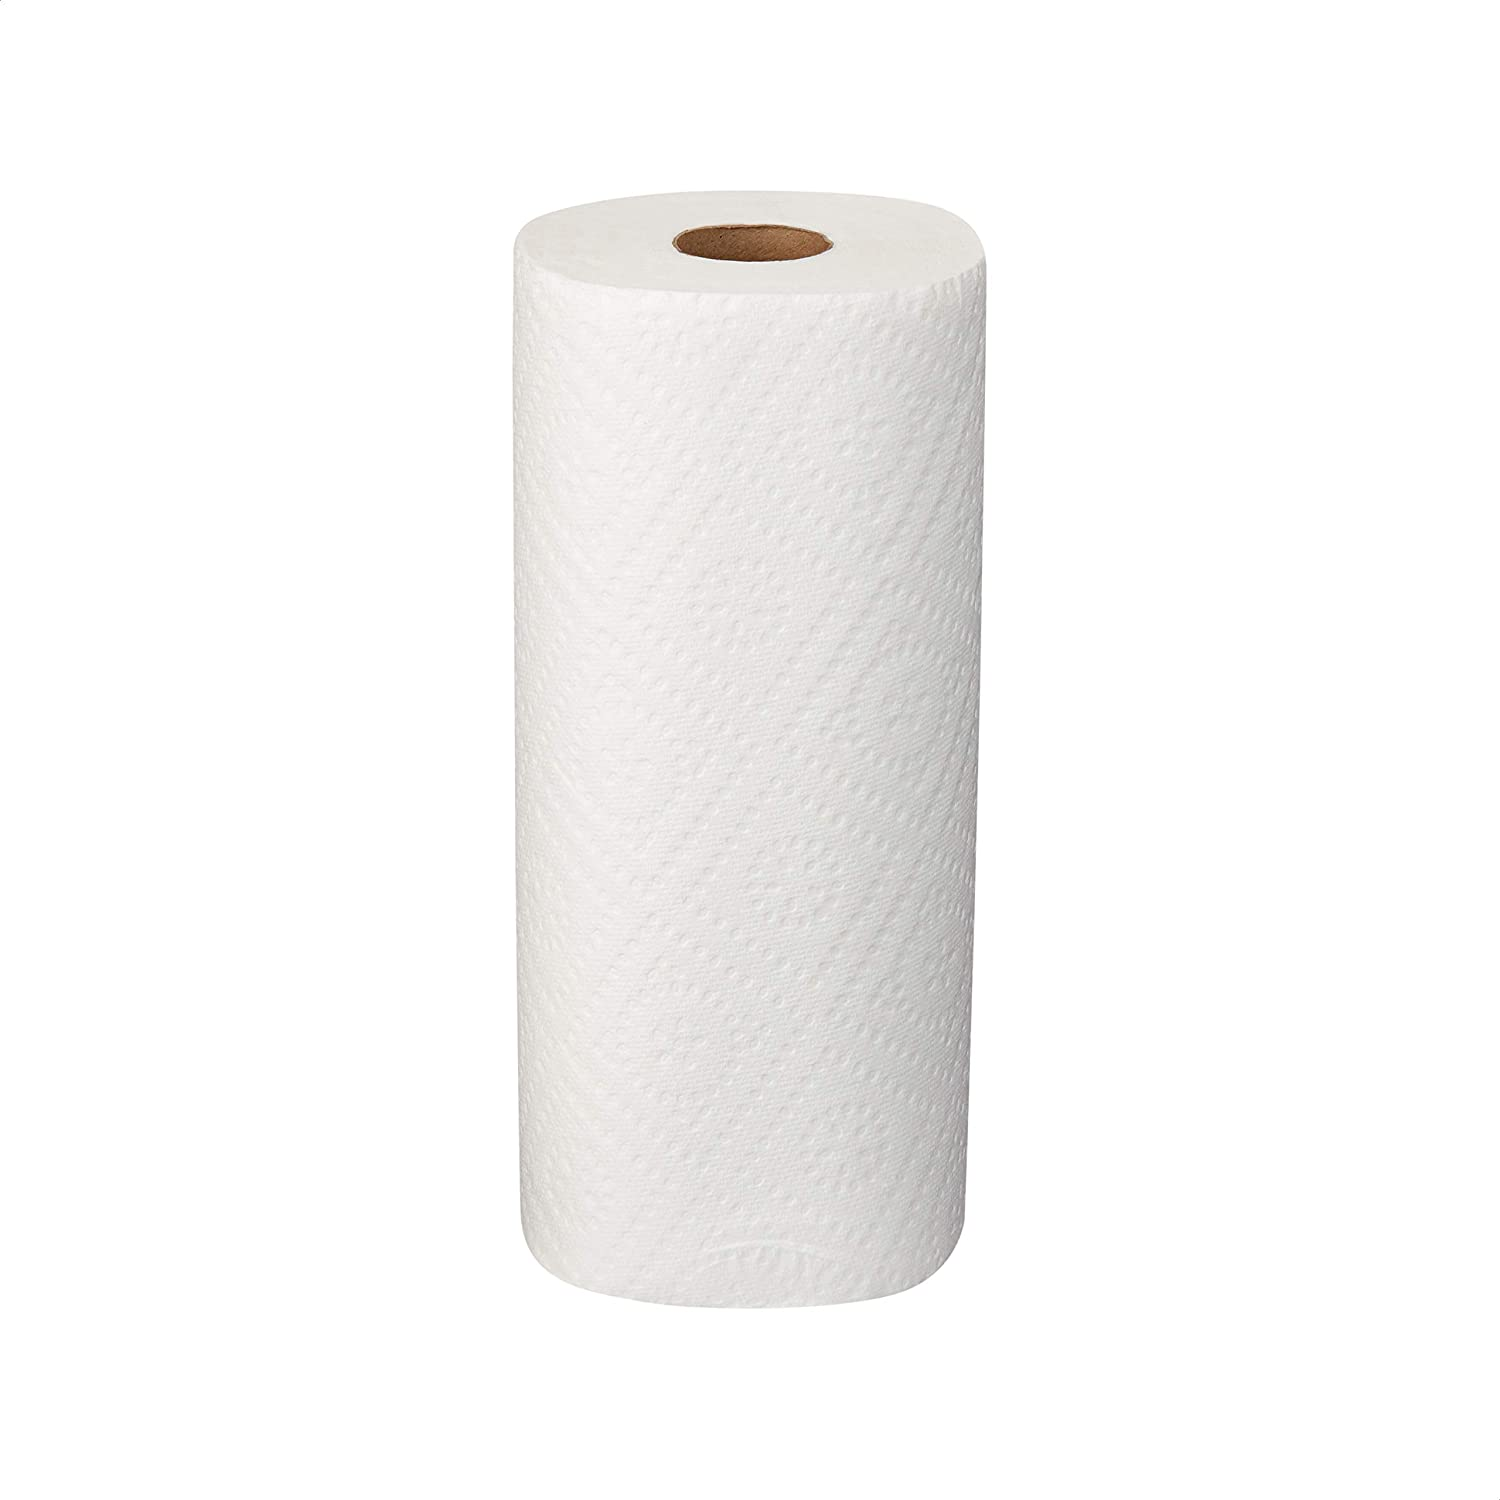 AmazonCommercial Adapt-A-Size Paper Towel, 12-Pack